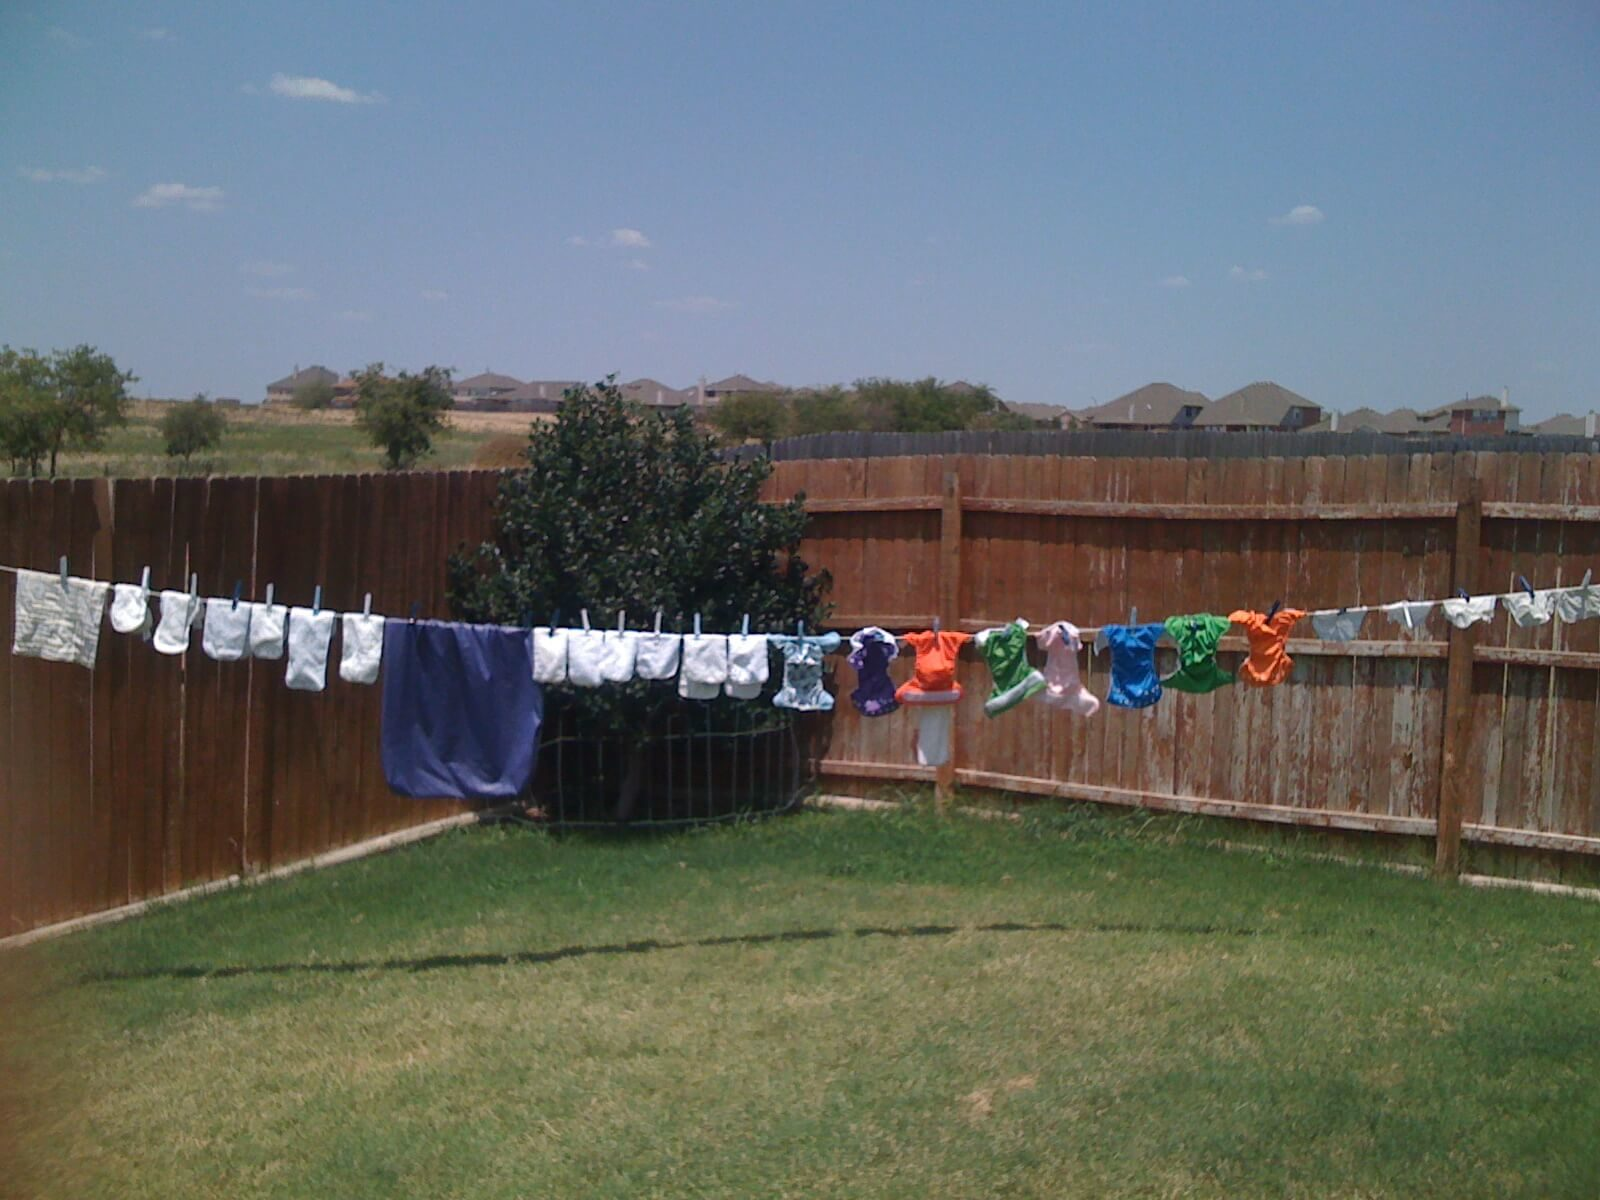 Diapers drying in the sun